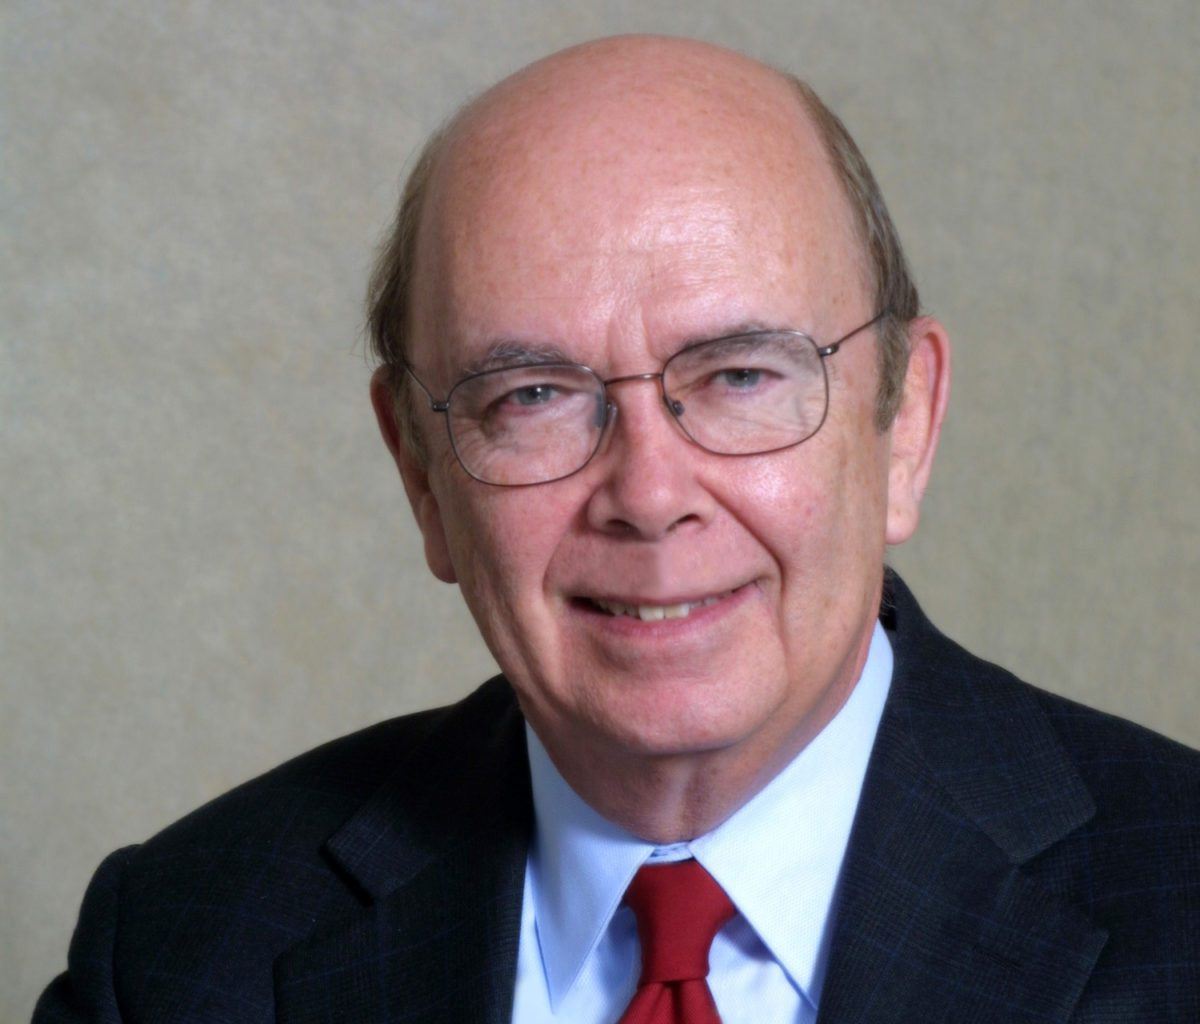 wilbur ross wl ross